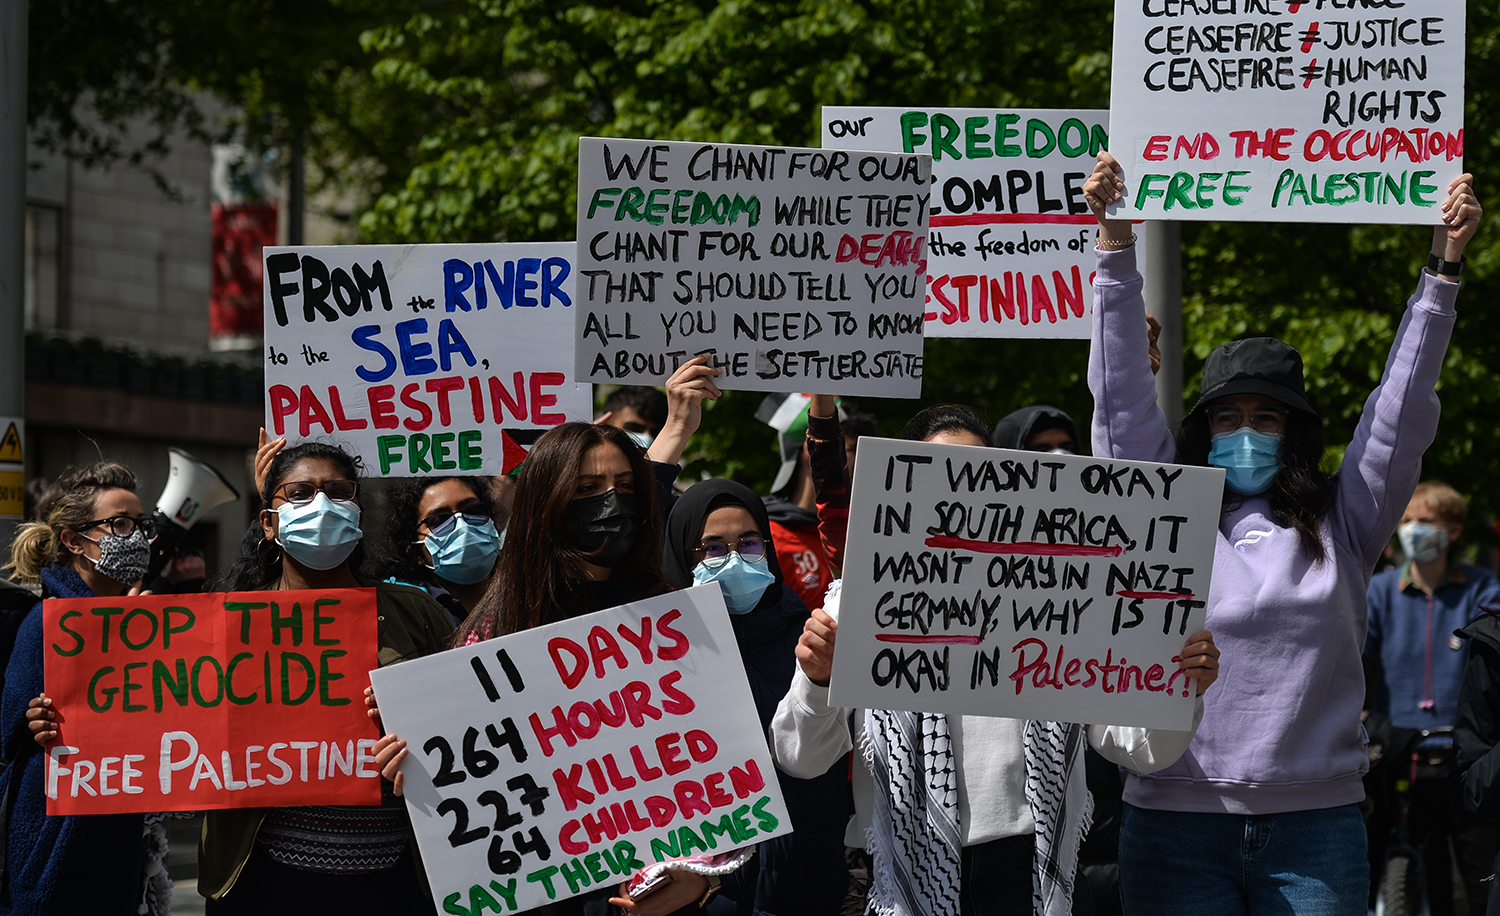 Protesters outside the Israeli Embassy in Dublin on Saturday, 22 May 2021. Artur Widak/NurPhoto via Getty Images.